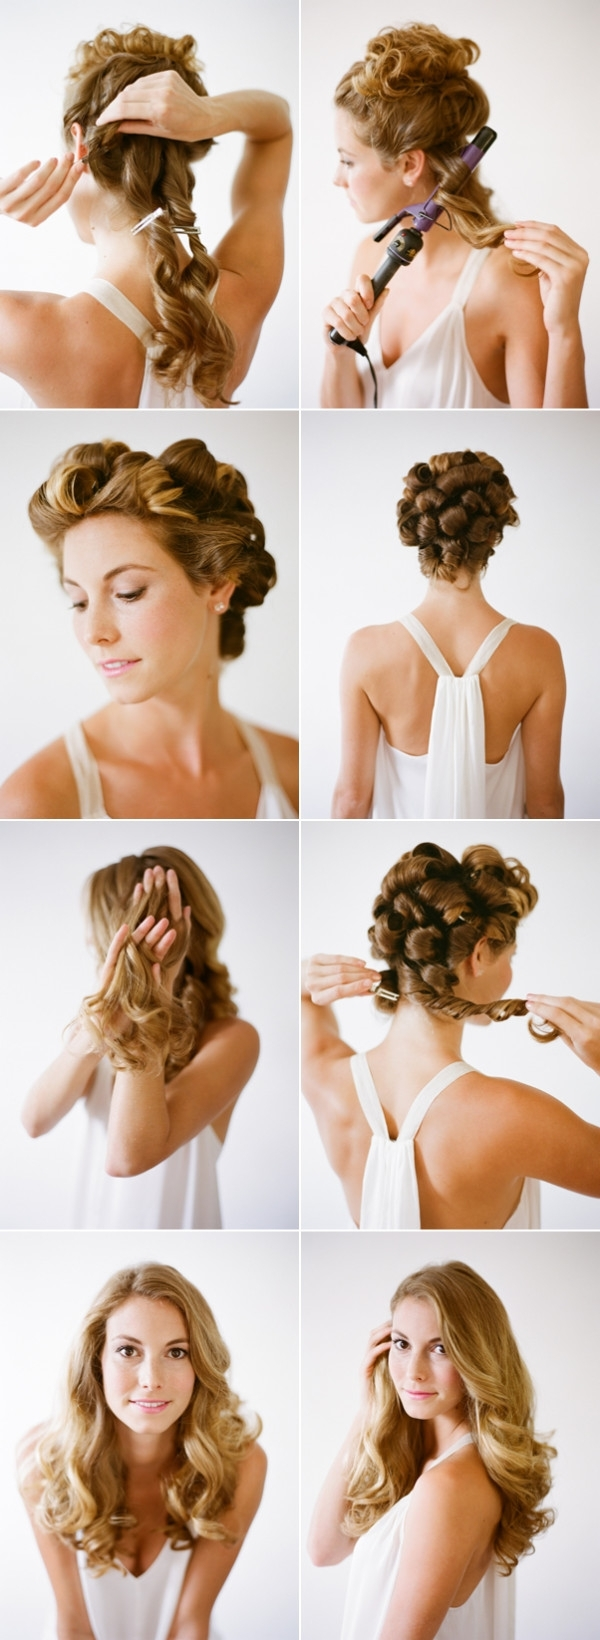 Diy Wedding Hairstyles – Hairstyles Inspiration Throughout Recent Wedding Hairstyles At Home (View 14 of 15)